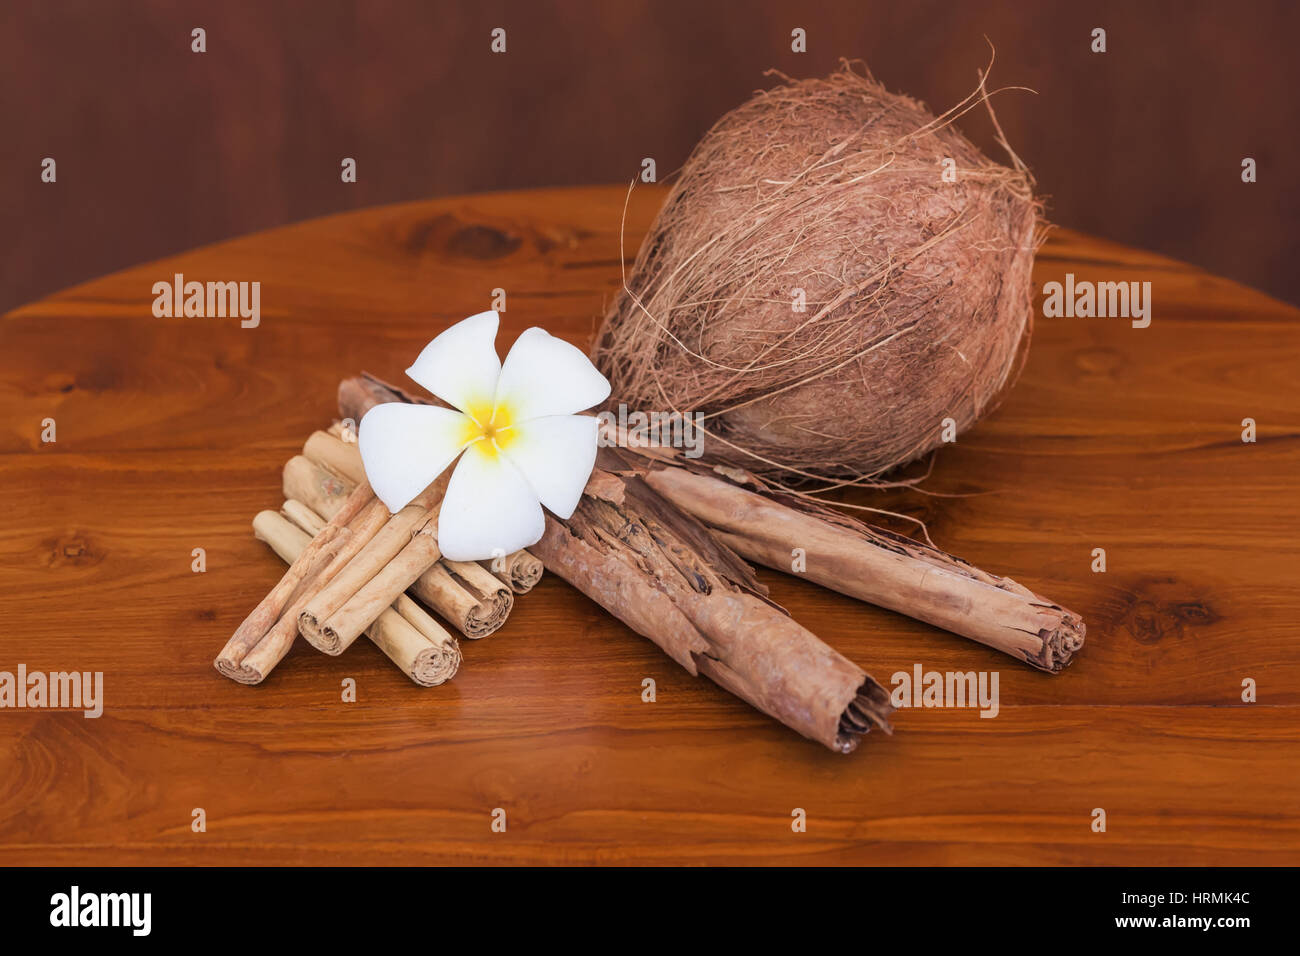 Whole coconut, cinnamon sticks and flower on wooden brown table. Close-up - Stock Image